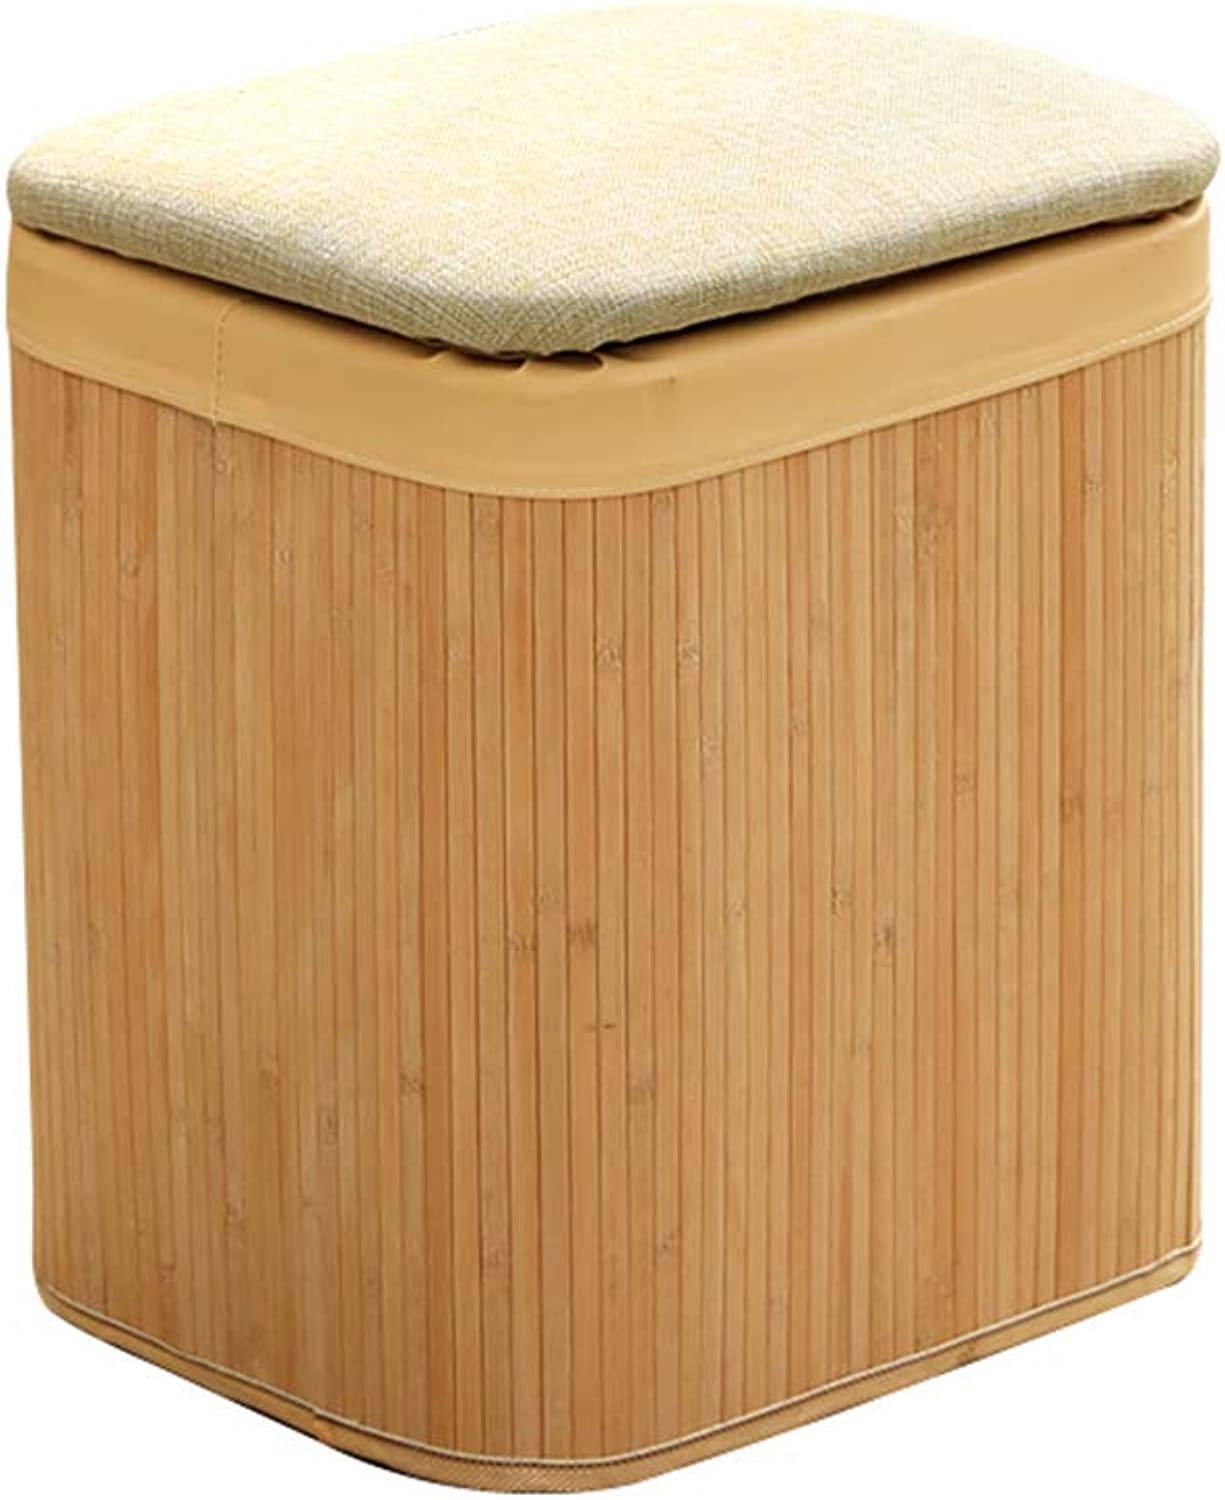 Storage Stool Creative Foot Rest Stool Solid Wood Bamboo Home Living Room Kitchen Bearing Weight 150Kg,M